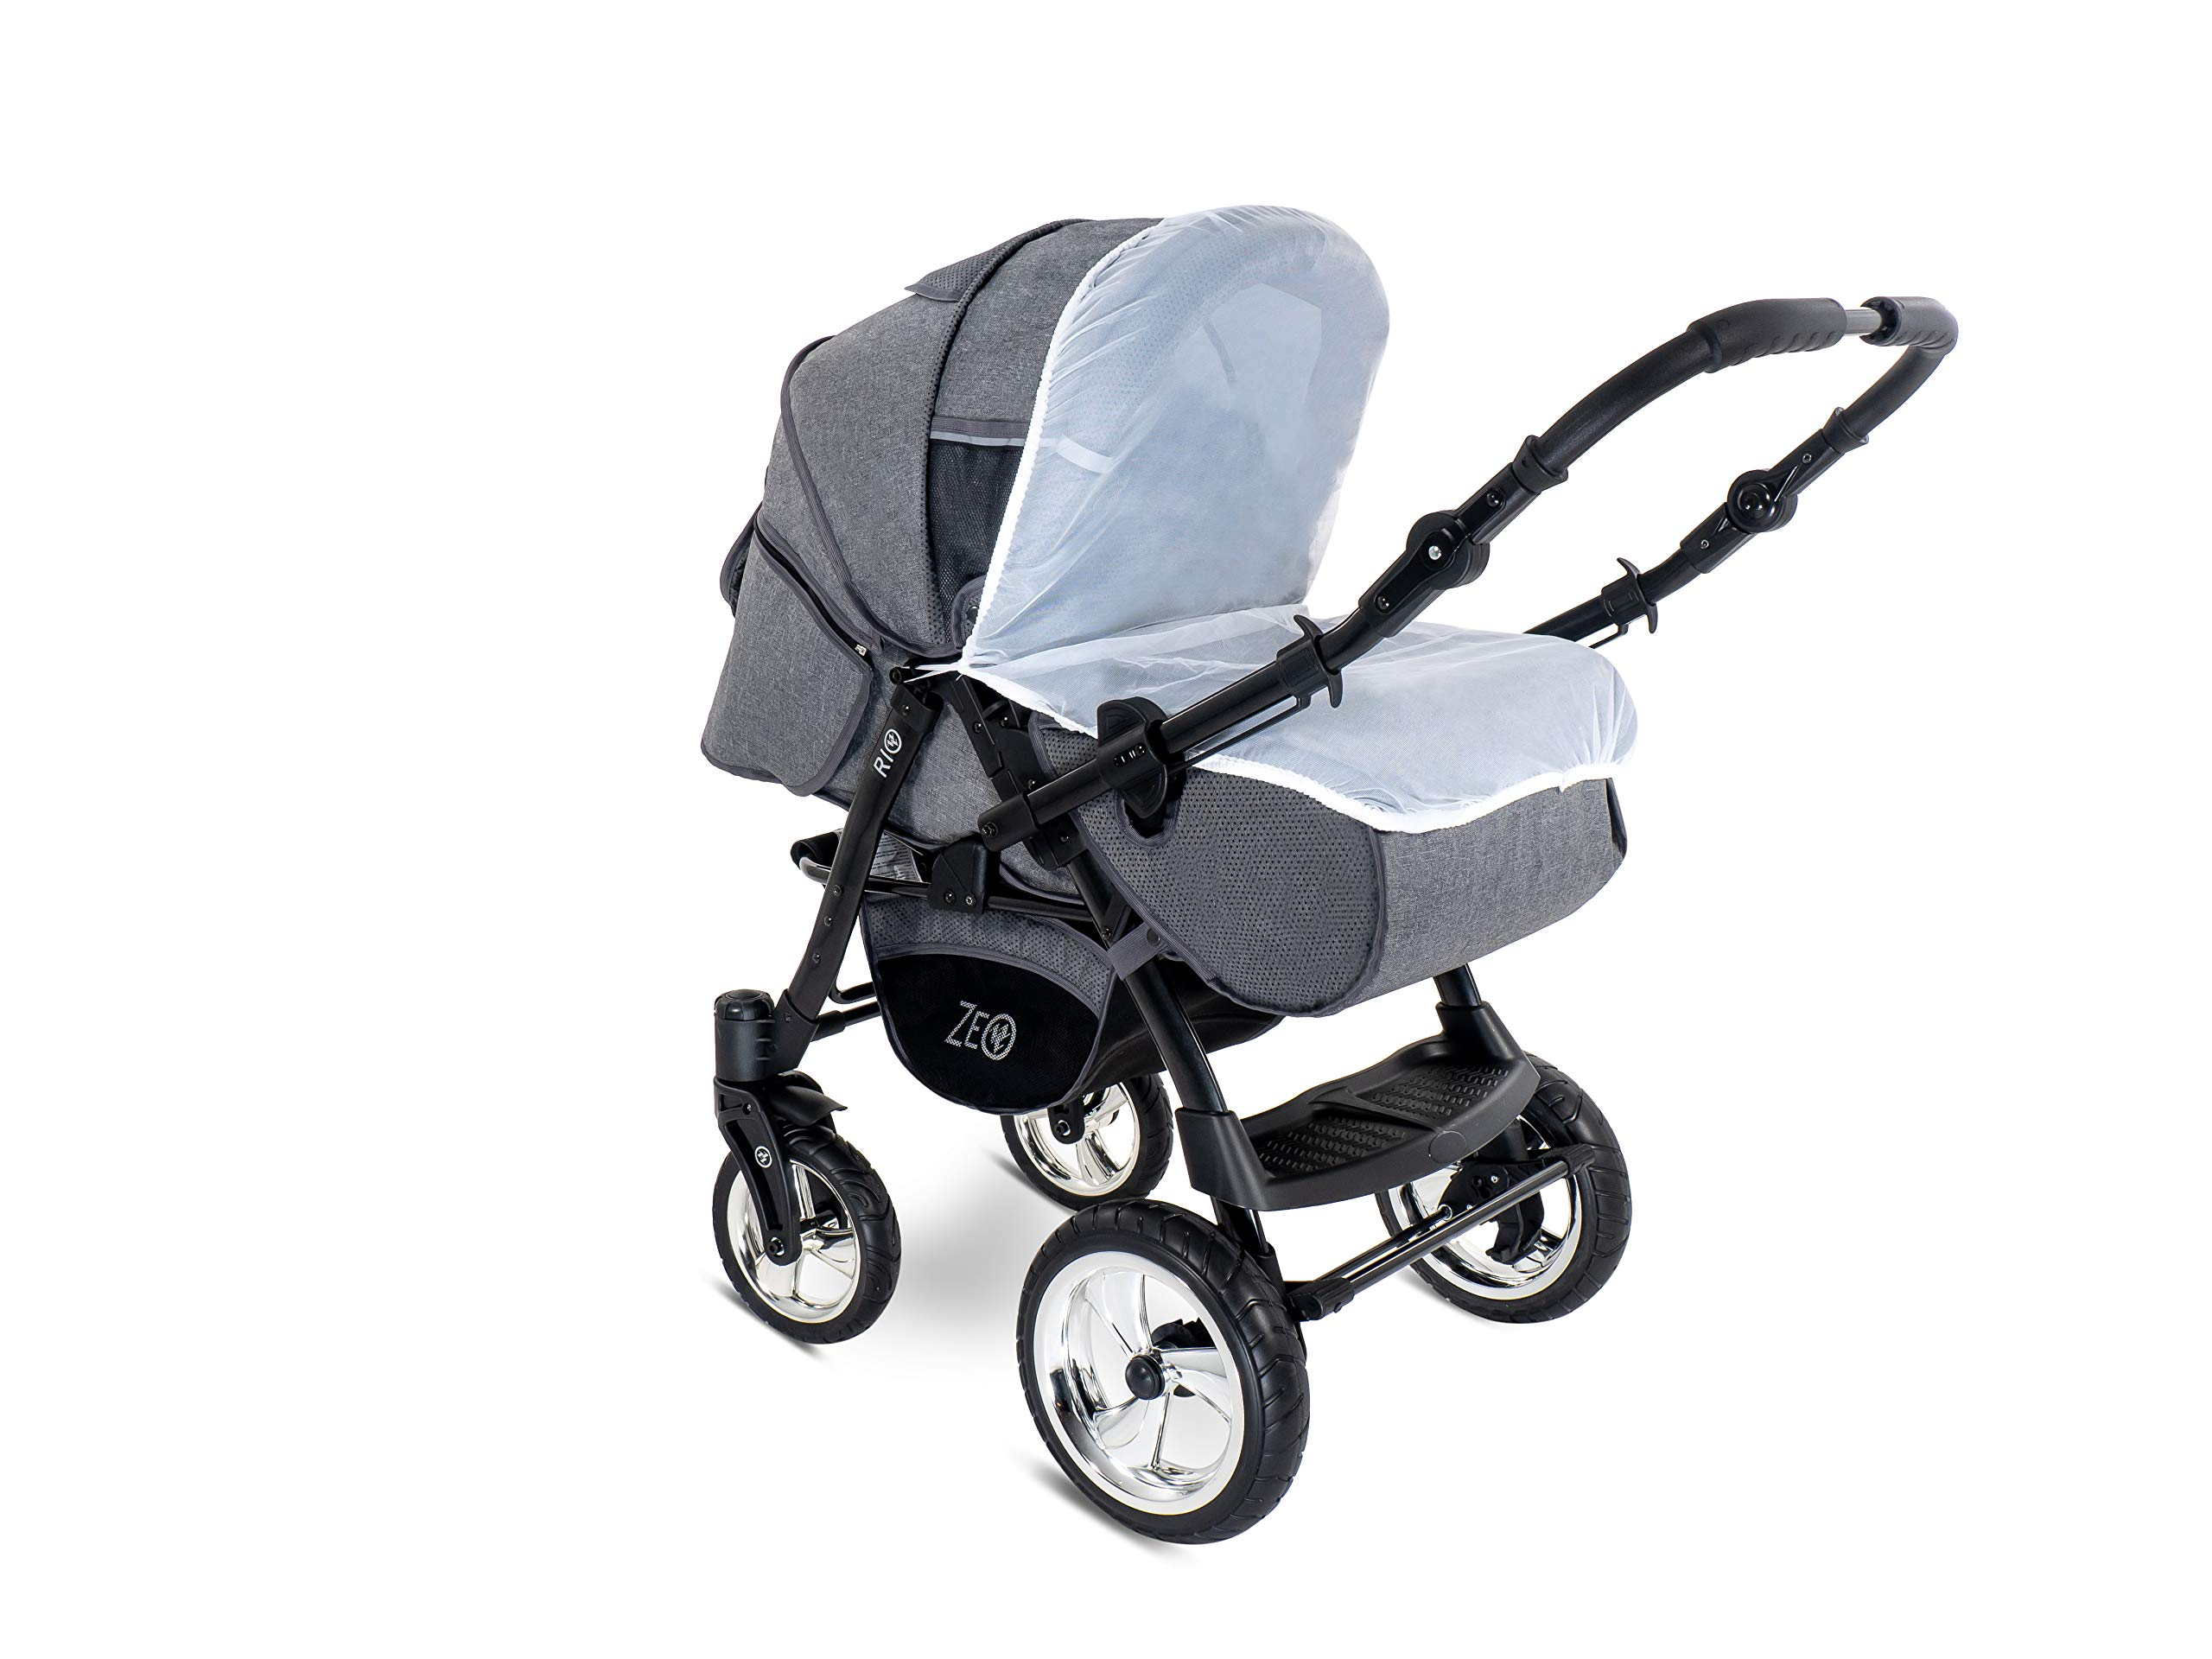 Baby Pram Zeo Rio 3in1 Set - All You Need! carrycot Gondola Buggy Pushchair car seat (R3) Zeo 3 in 1 combination stroller complete set, with reversible handle to the buggy, child car seat or baby carriage Has 360 ° swiveling wheels, two-fold suspension, four-stage backrest, five-position adjustable footrest and a five-point safety belt The stroller can be easily converted into other functions and easy to transport 8